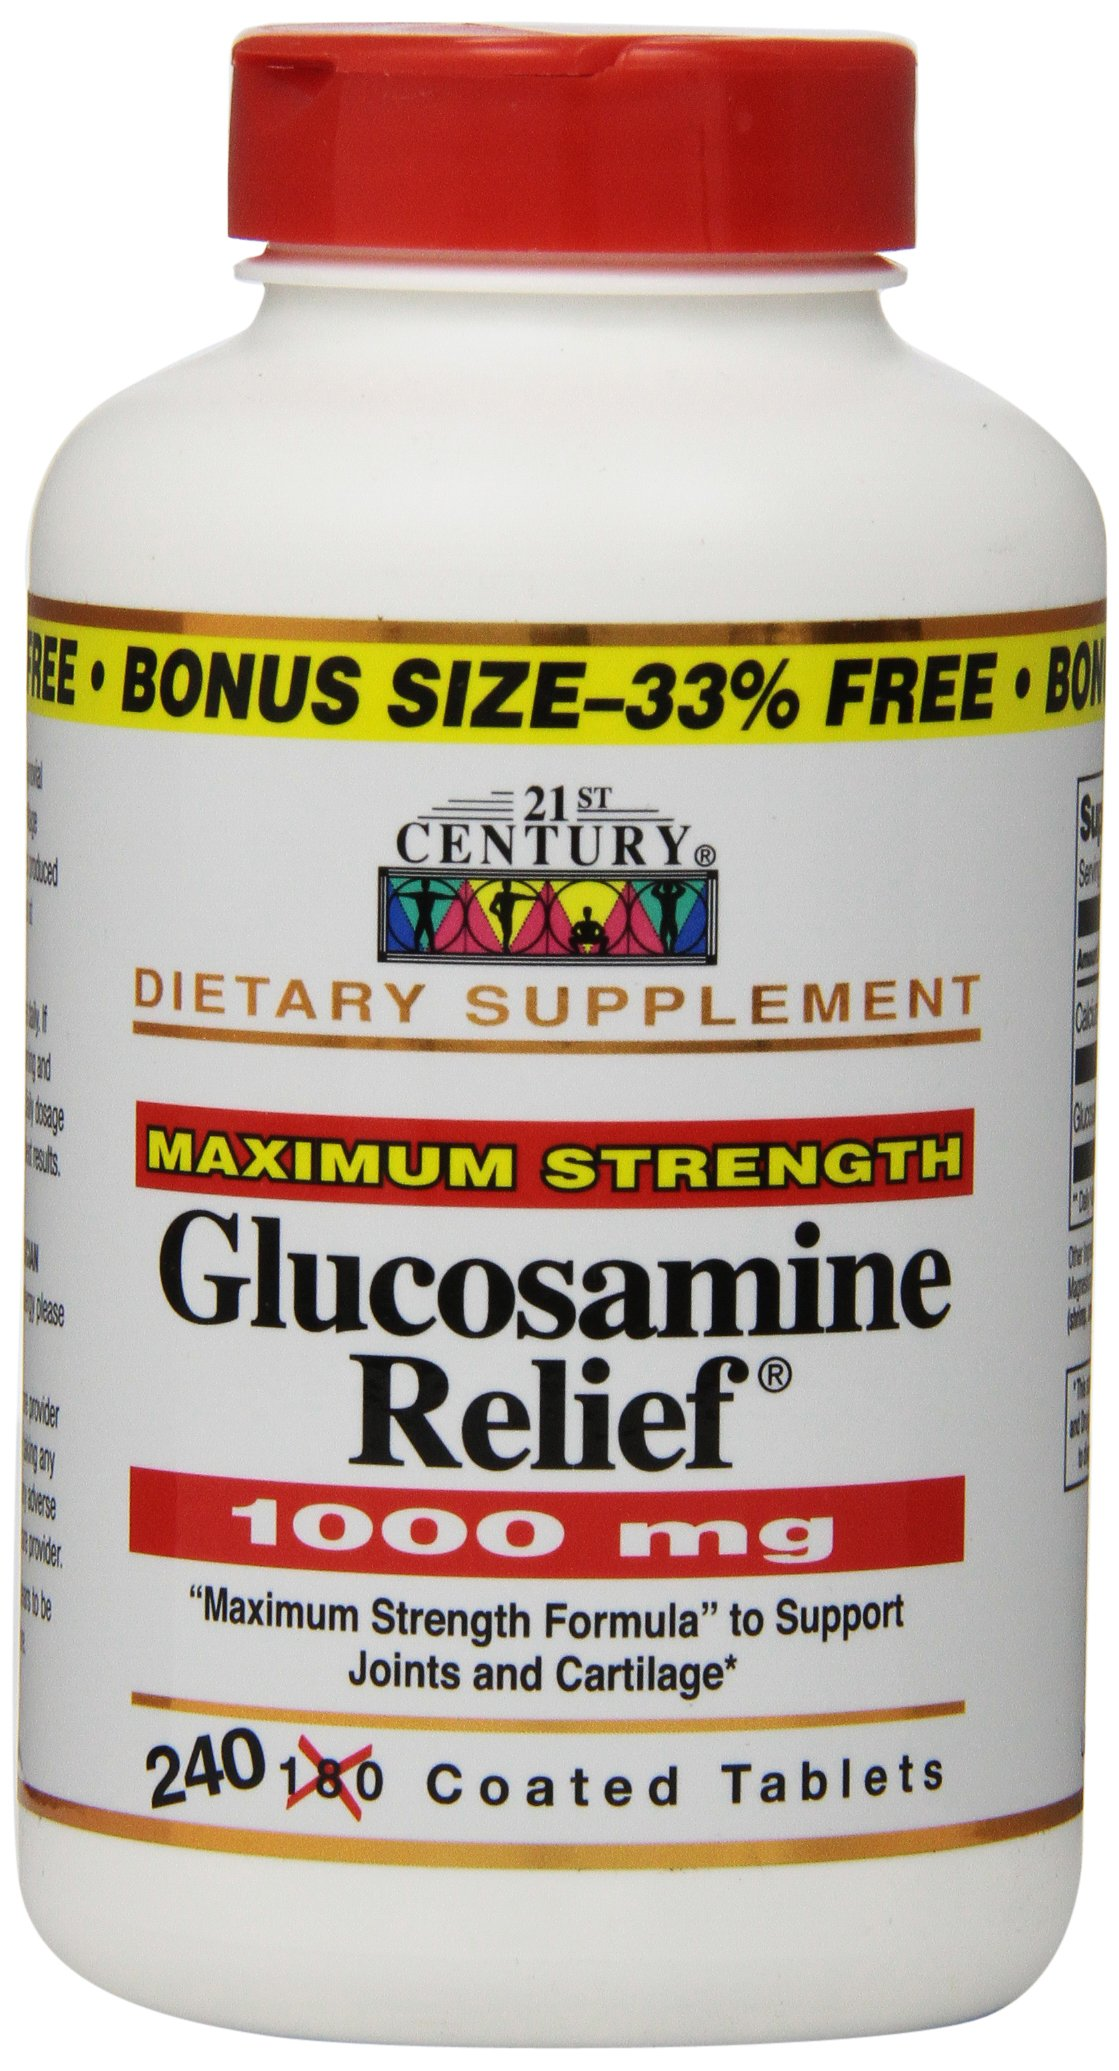 21st Century Glucosamine Relief® 1000mg Tablets, 240 Count